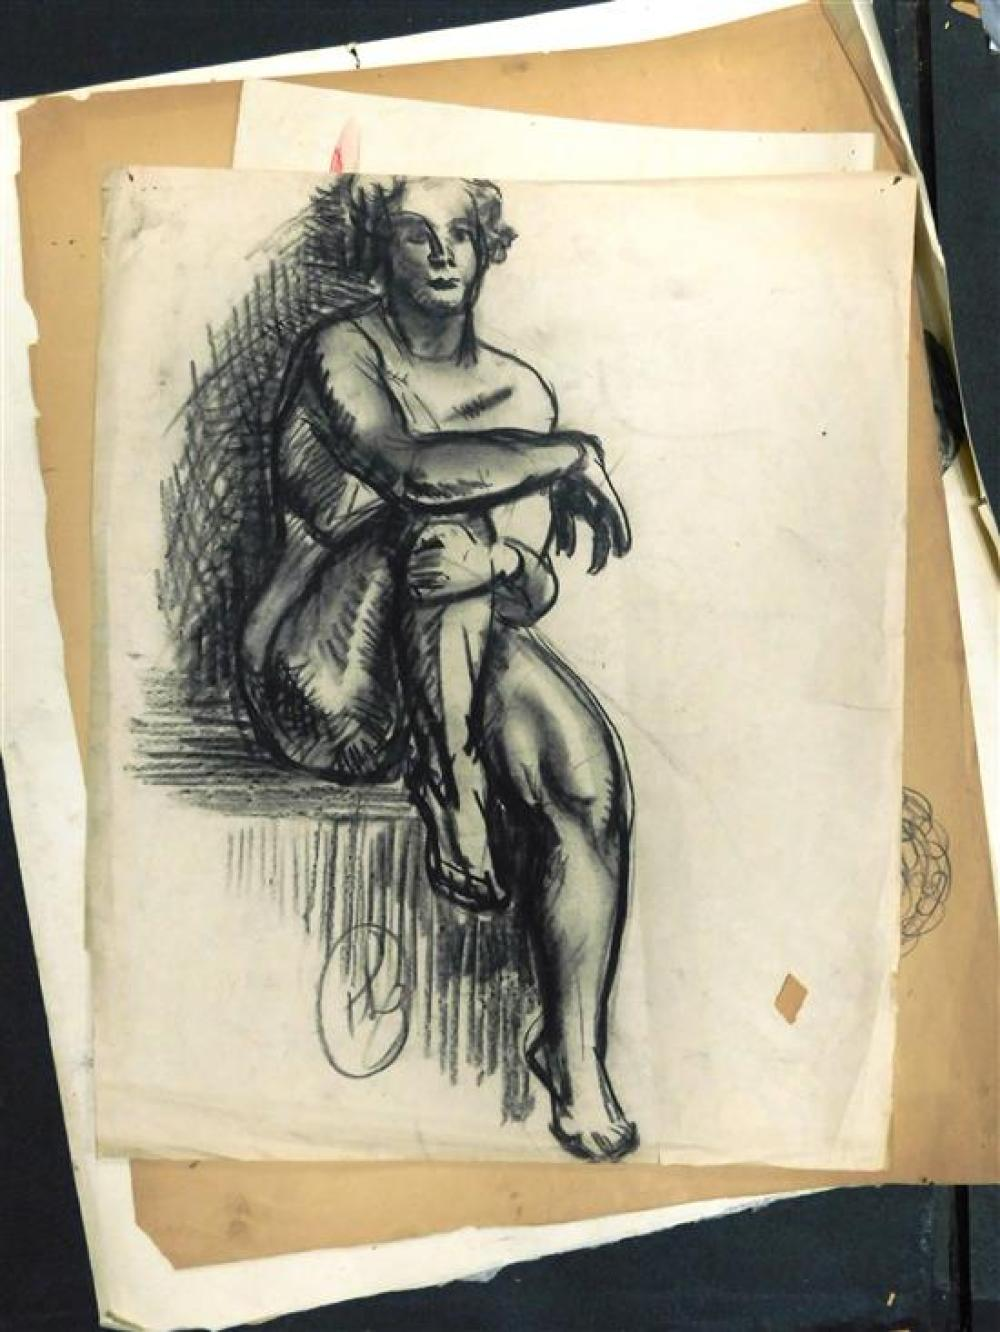 Hayley Lever (Australian, 1876-1958), 35+ loose drawings, 19th/20th C., nude studies, materials include graphite, charcoal, pastel,...